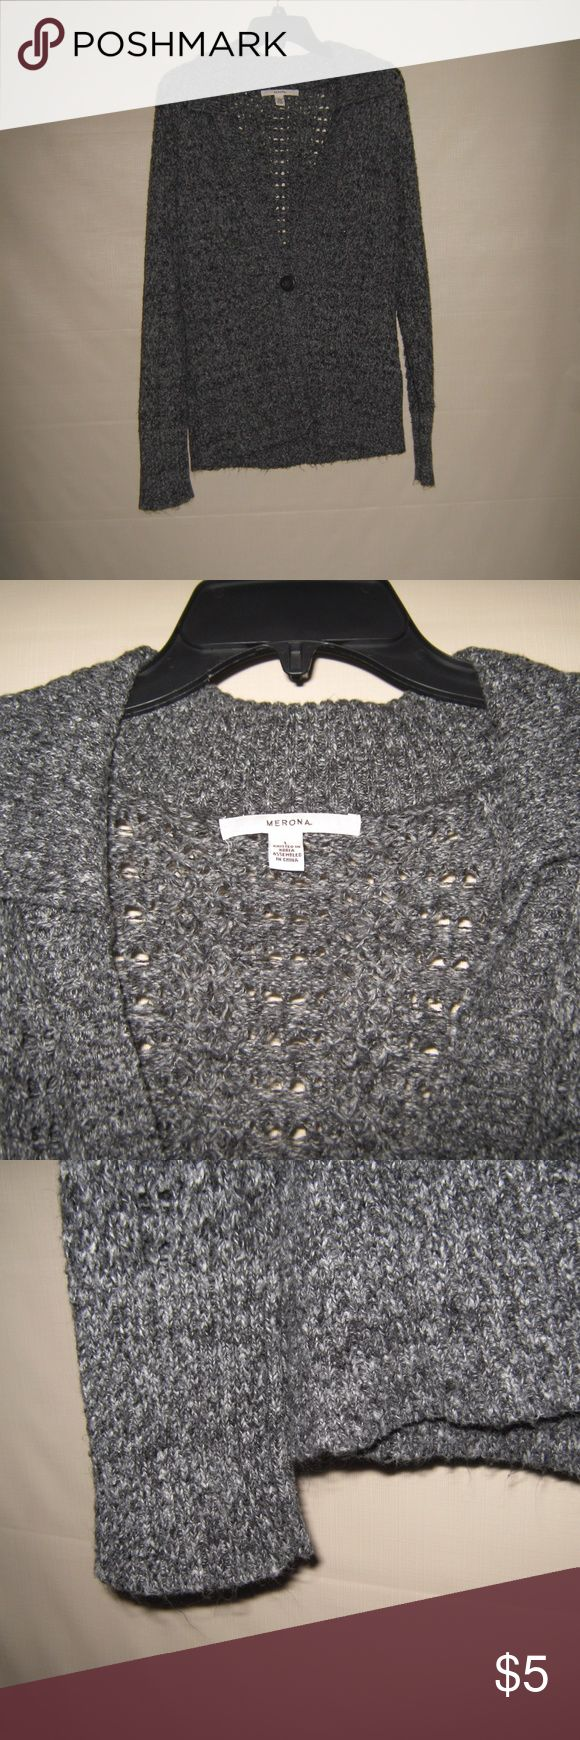 Merona Marled Boyfriend Collared Cardigan Size L. Collar, open-knit pattern and single button closure. Fuzzy texture from wash. Super comfortable, slightly oversized fit. Smoke free, pet free home, offers and bundle offers welcome. Merona Sweaters Cardigans